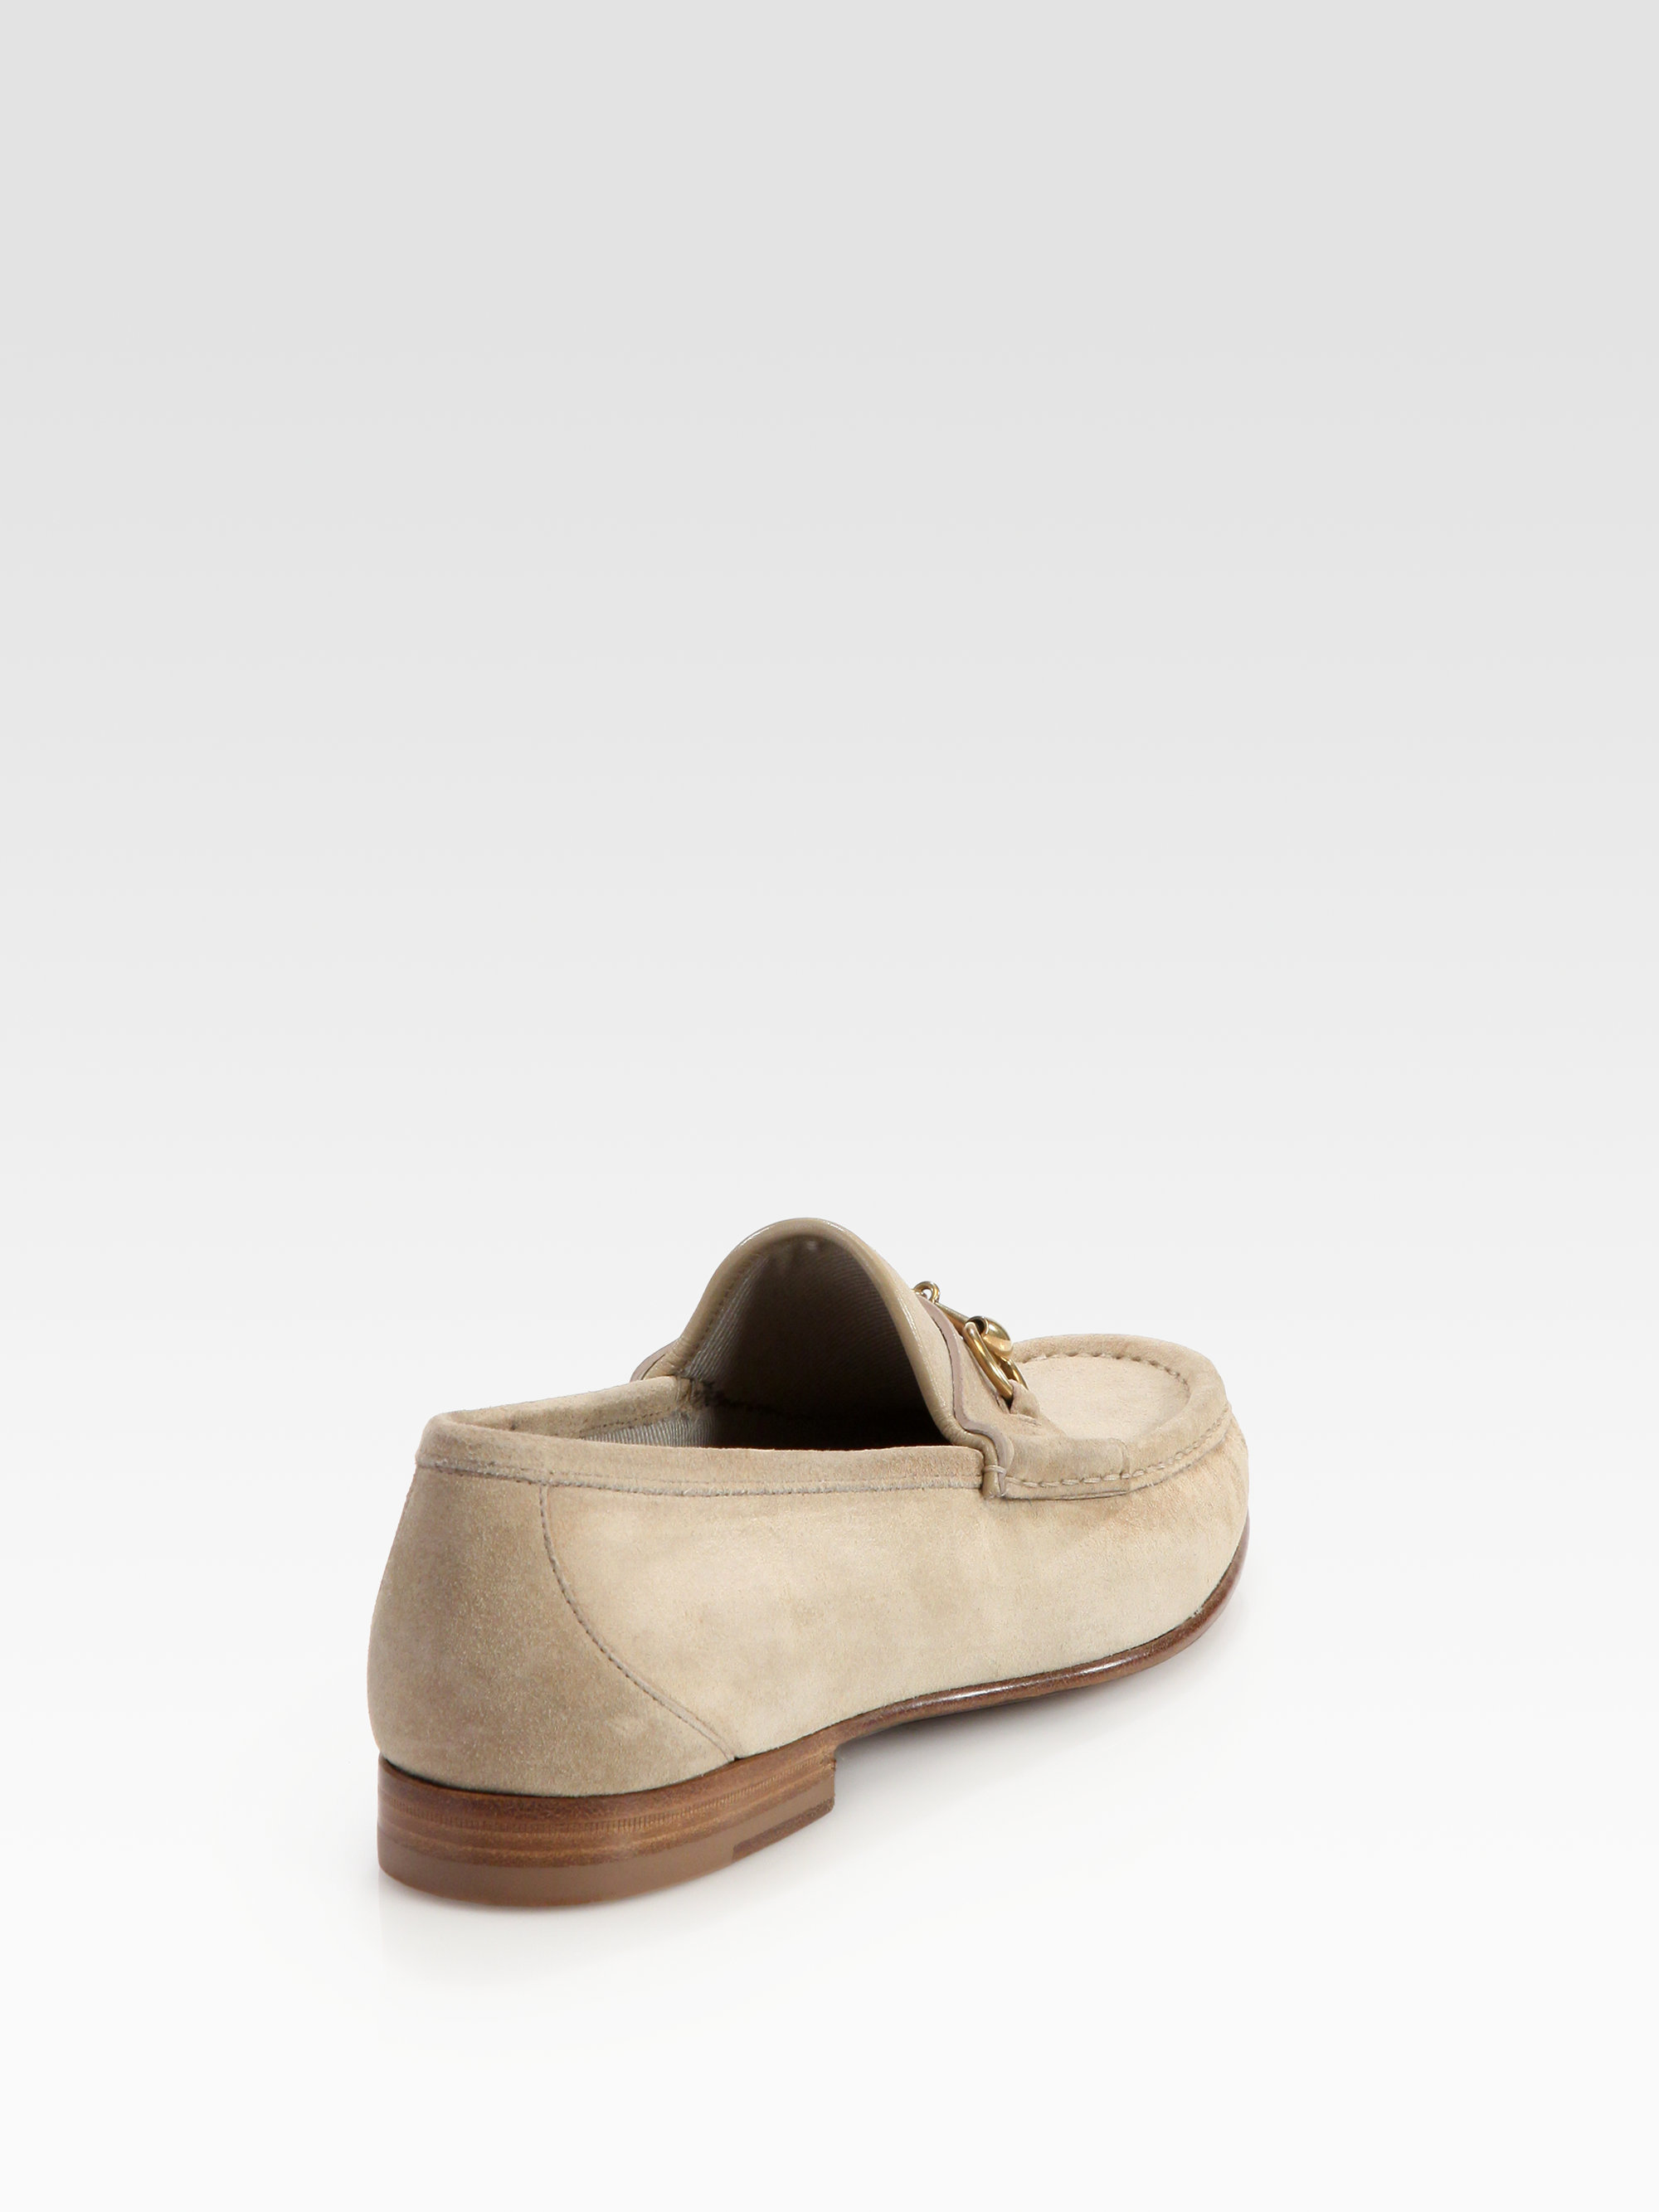 e7c9f41f8e3 Gucci Roos Suede Horsebit Loafers in Natural for Men - Lyst